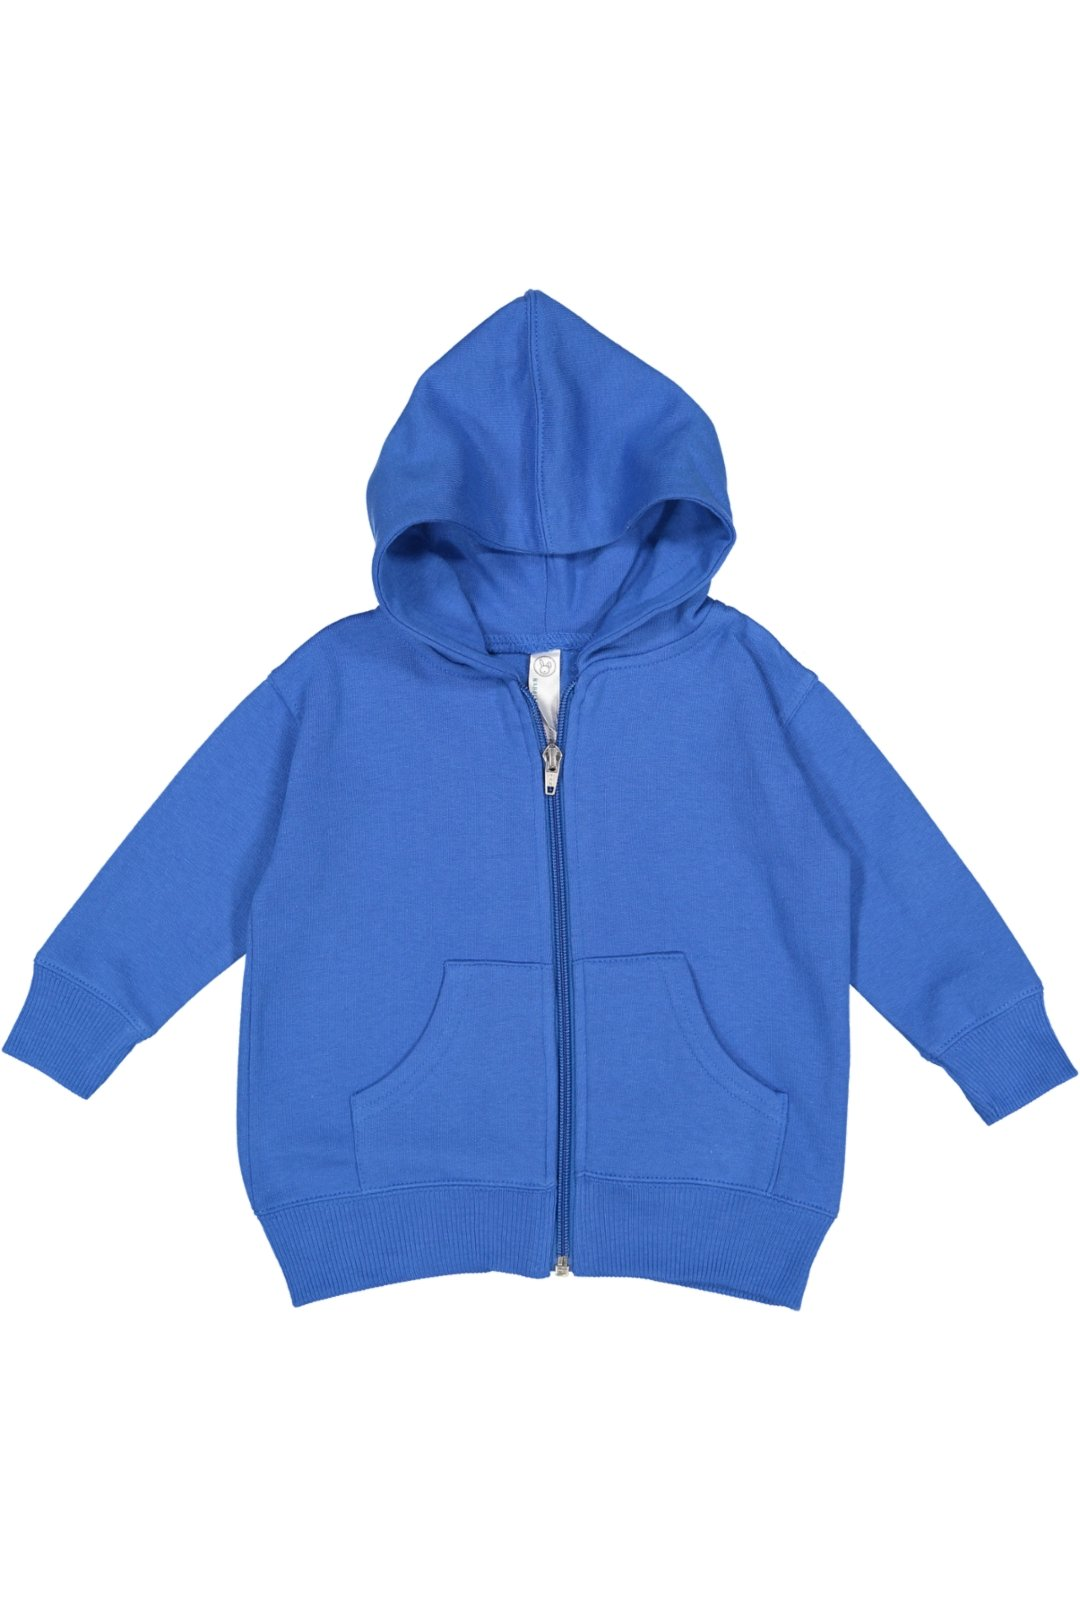 Rabbit Skins Infant Fleece Long Sleeve Full Zip Hooded Sweatshirt with Pouch Pockets, Royal, 6 Months by Rabbit Skins